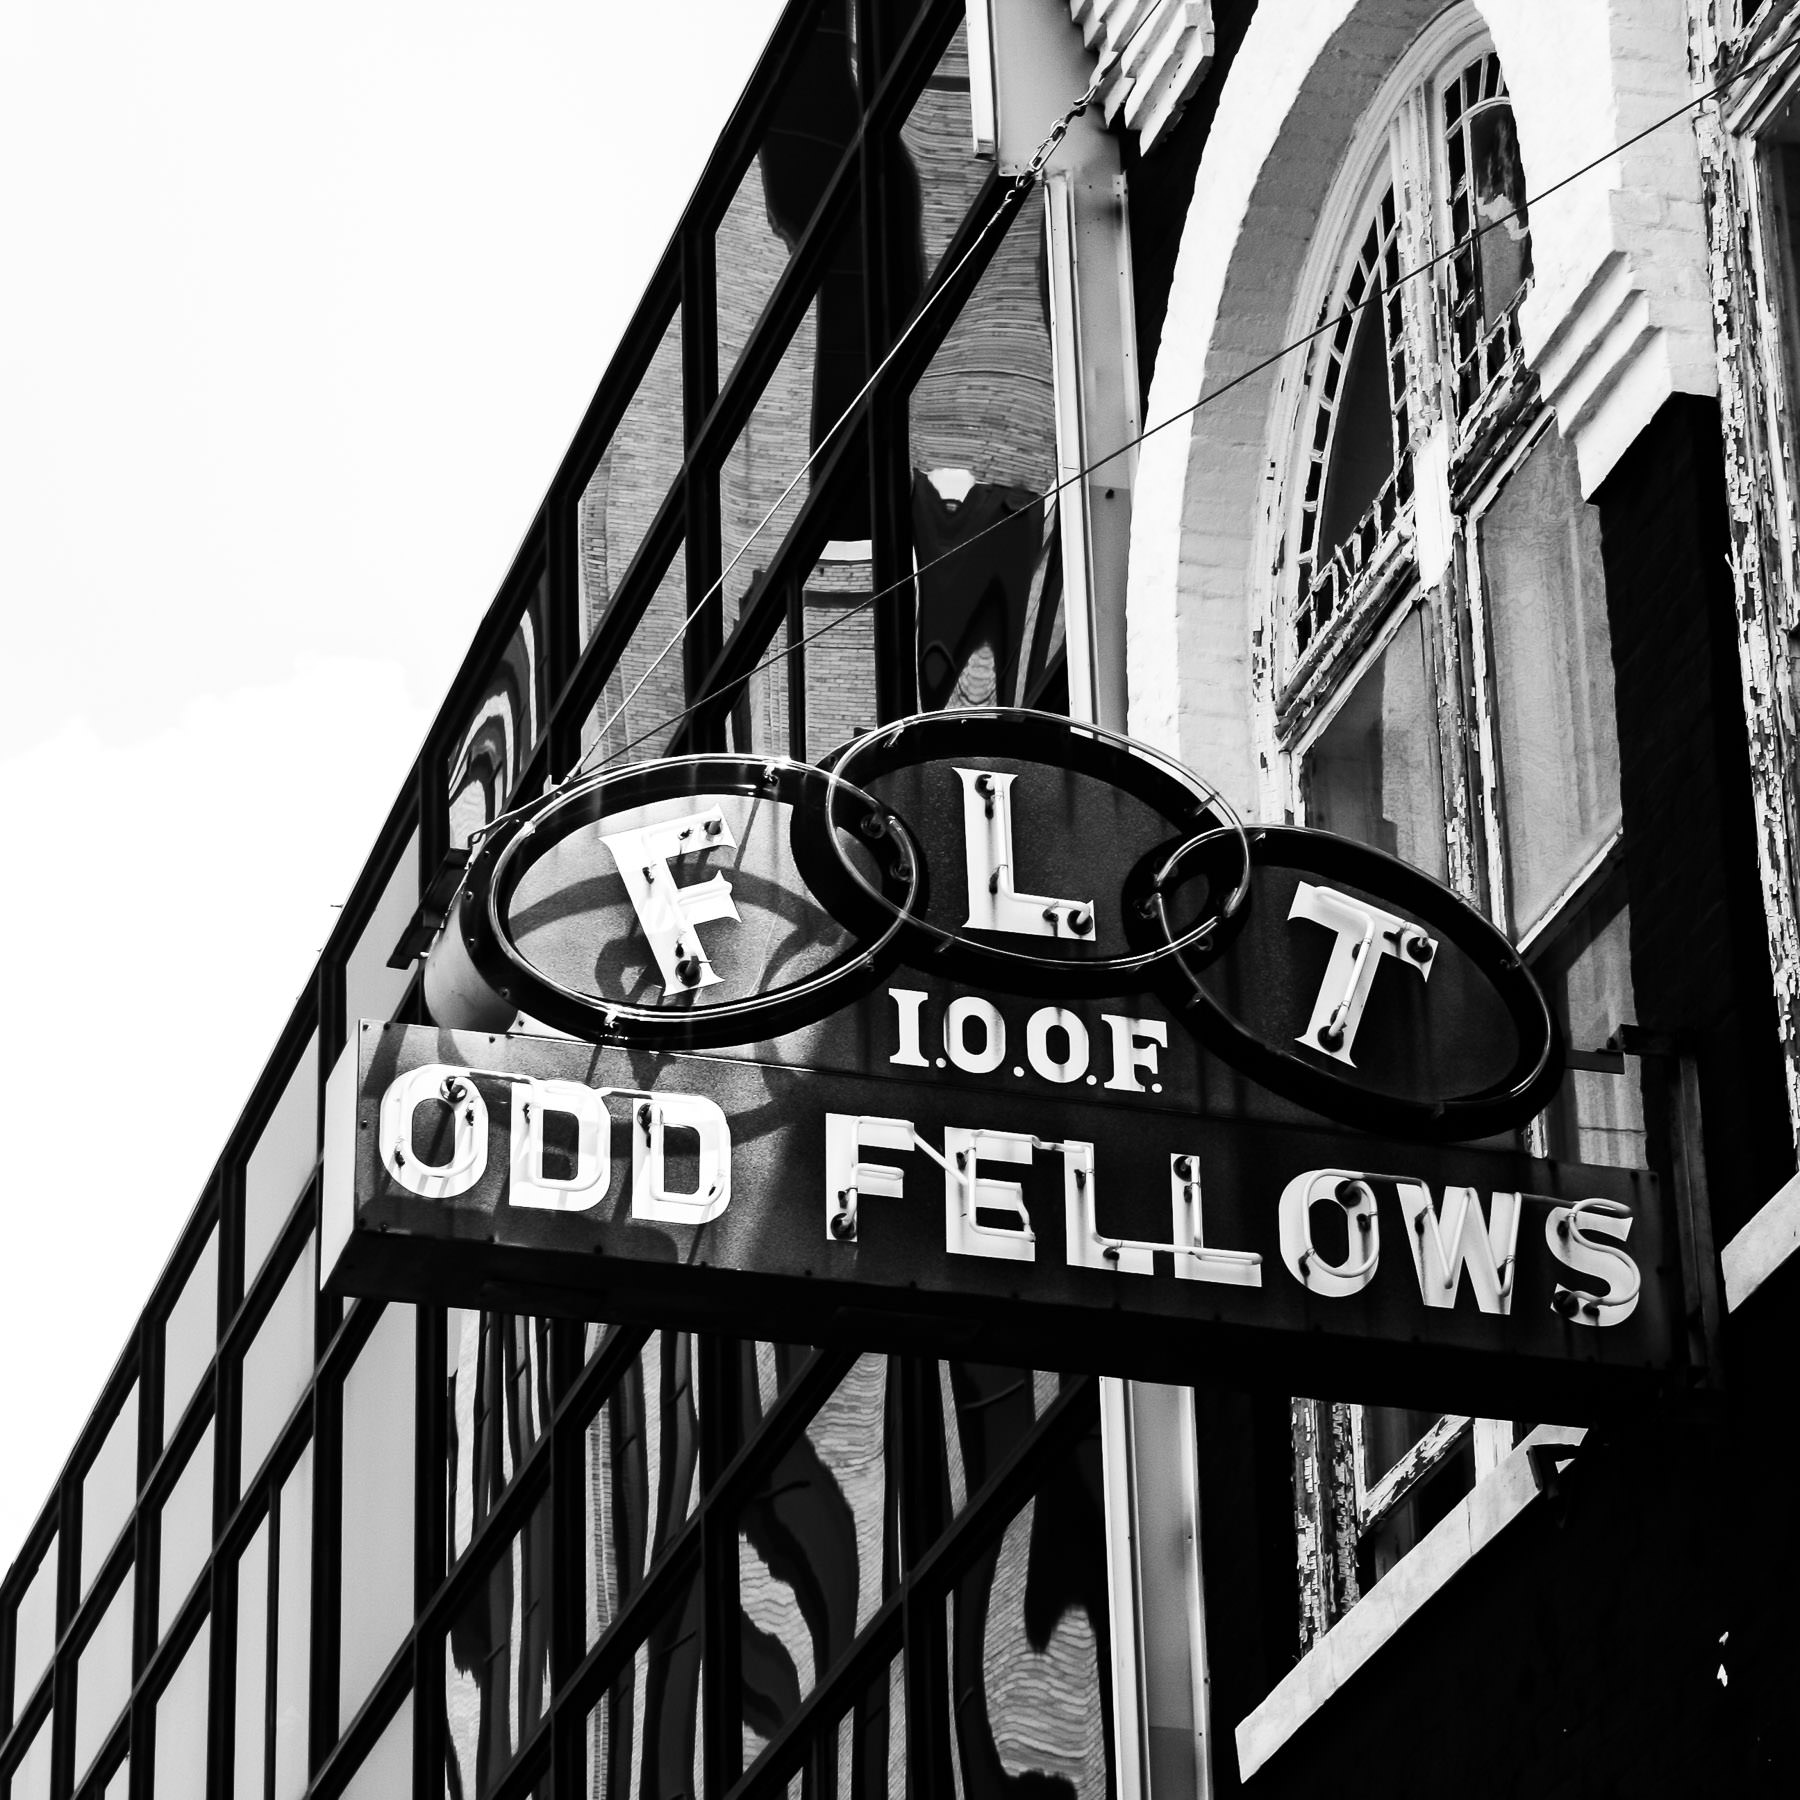 The sign at the International Order of Odd Fellows in Downtown Tyler, Texas.